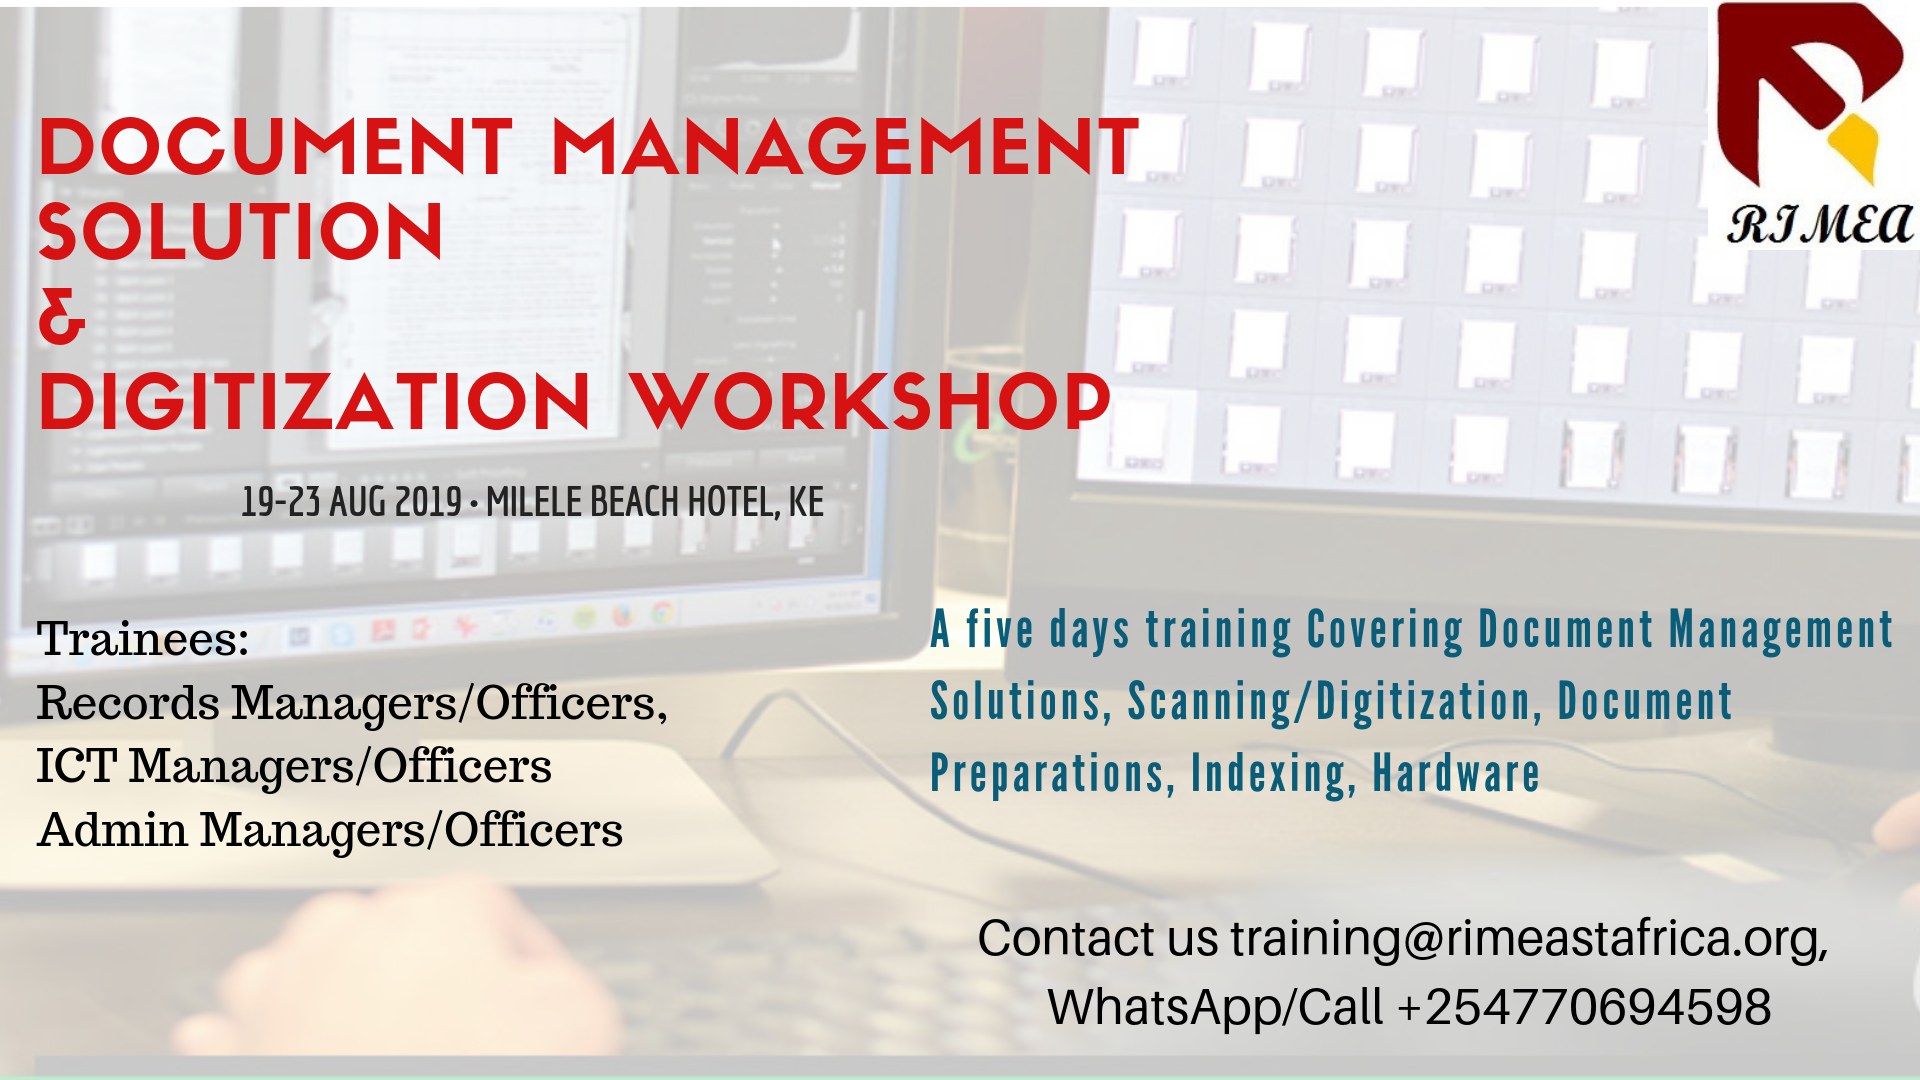 5 Days EDMS Workshop: Digitizing Records and Automation of Processes